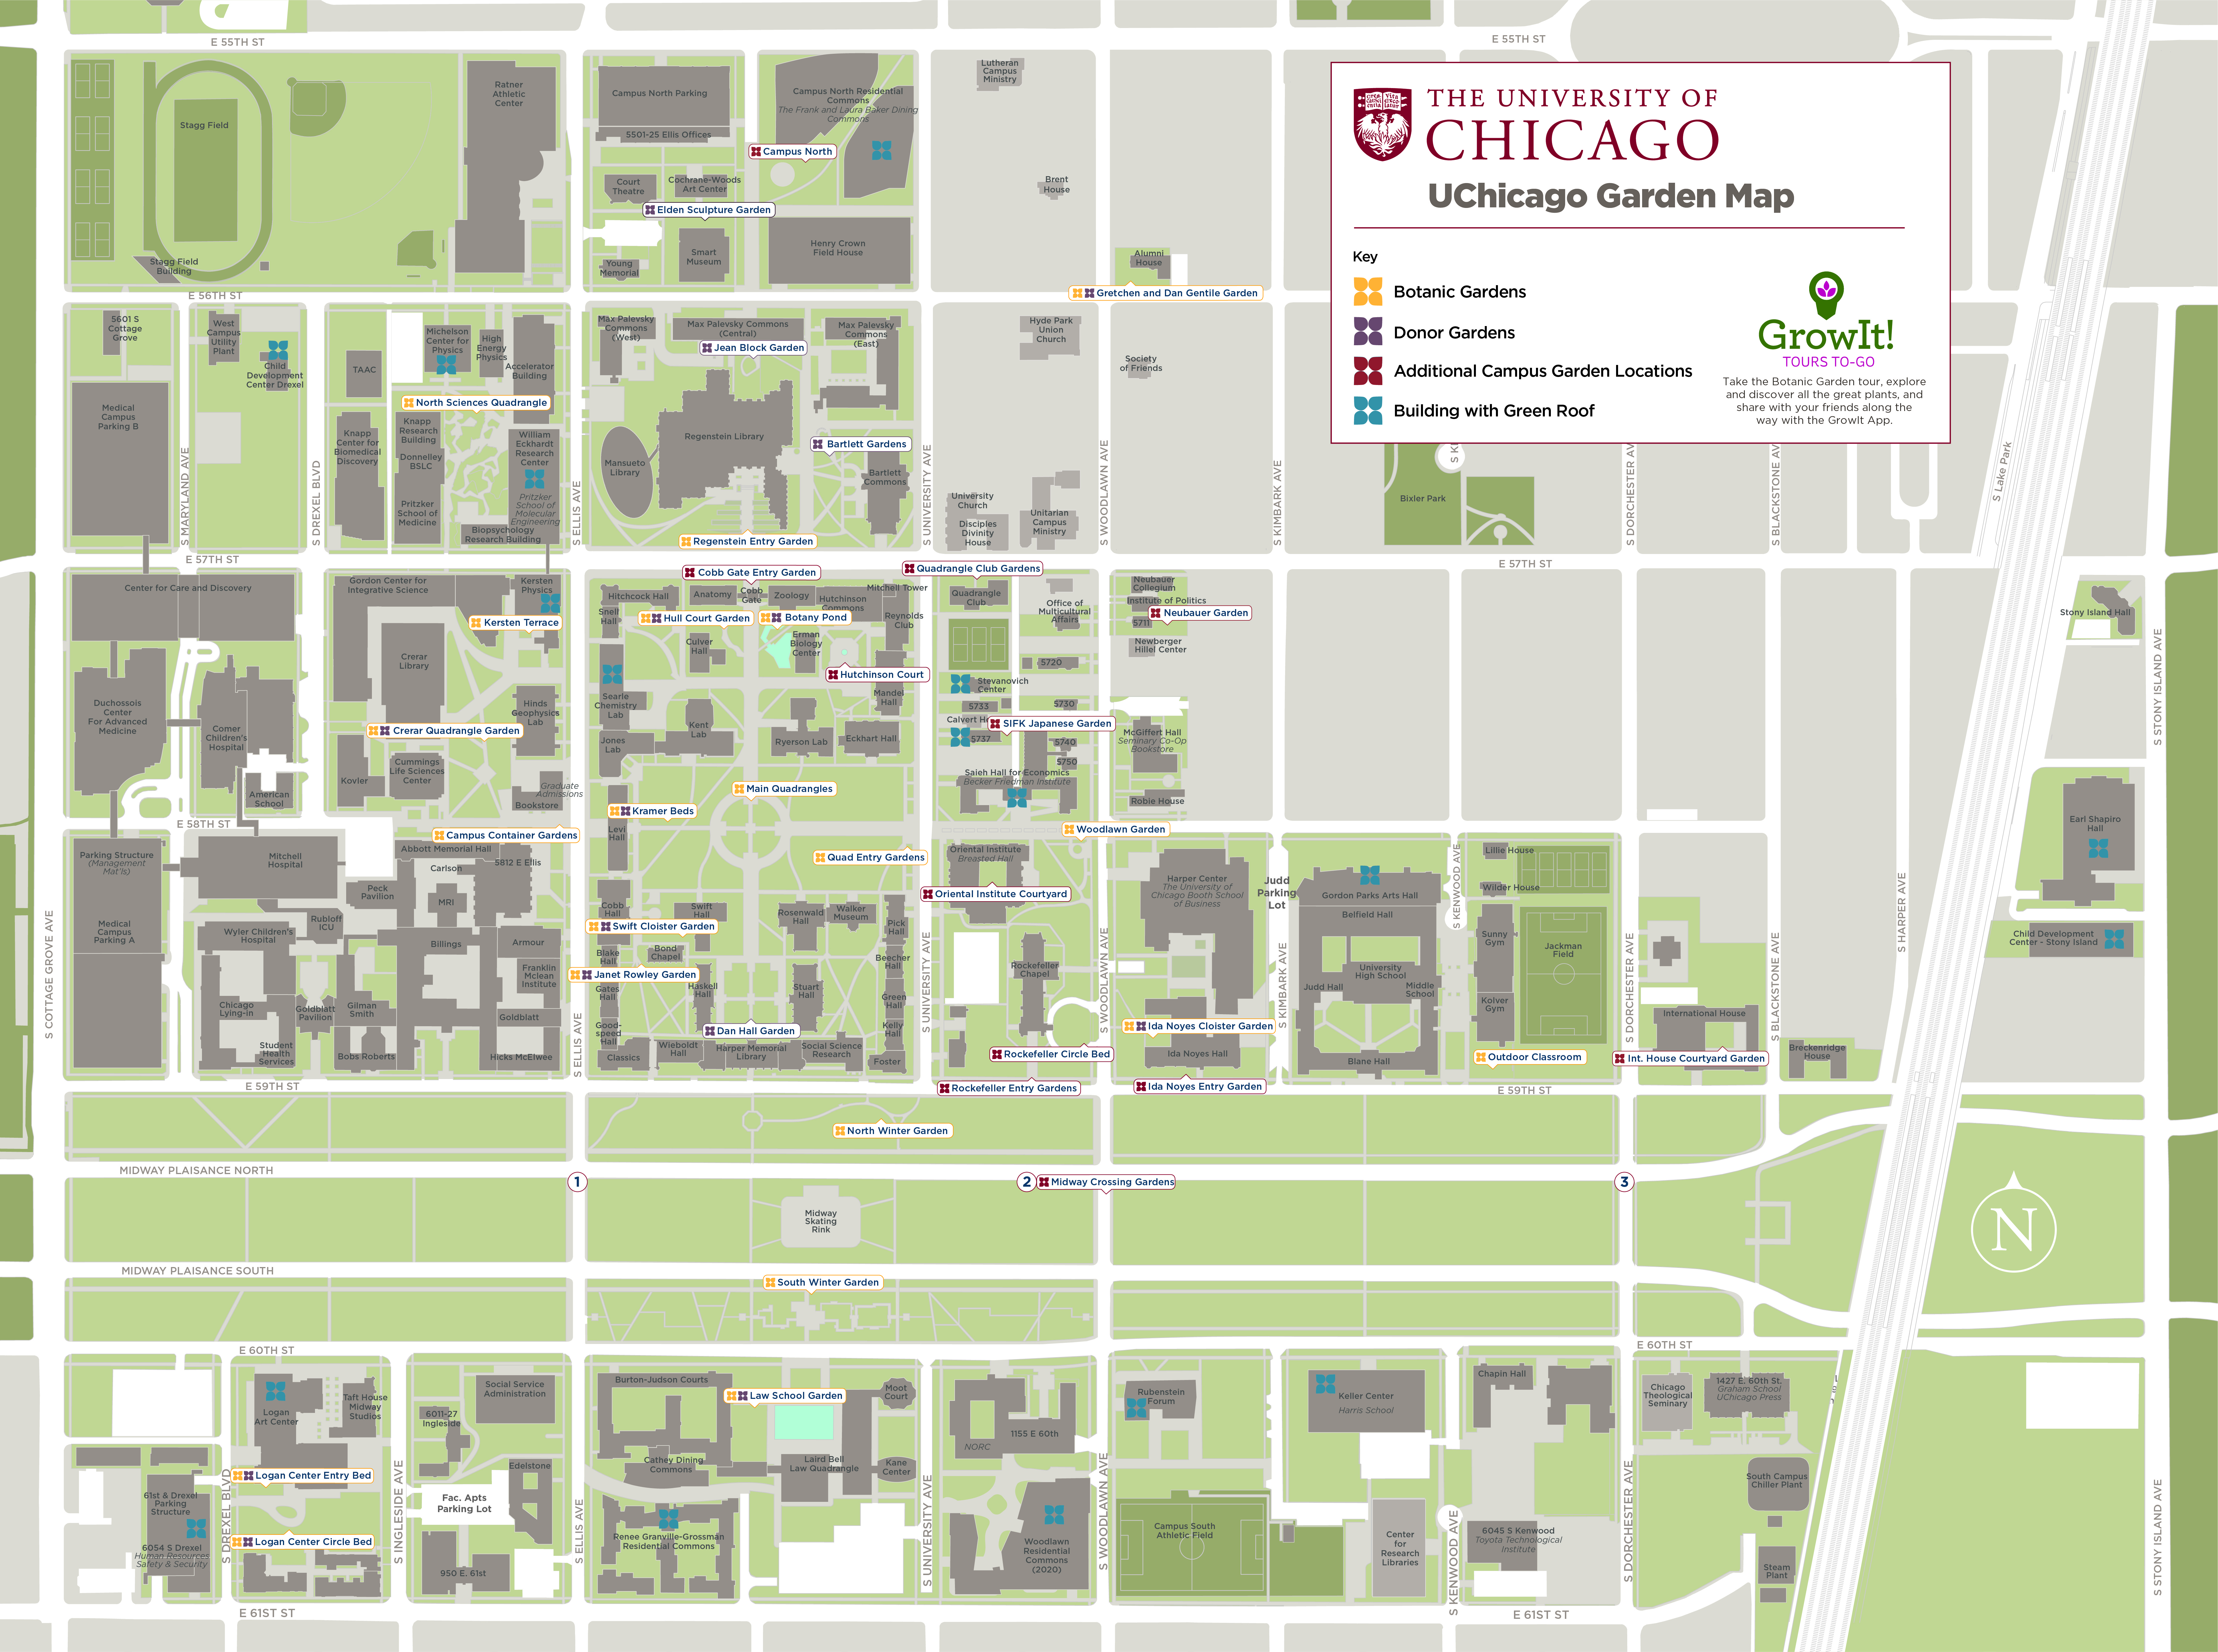 map of u of c campus Uchicago Garden Map The University Of Chicago Facilities Services map of u of c campus